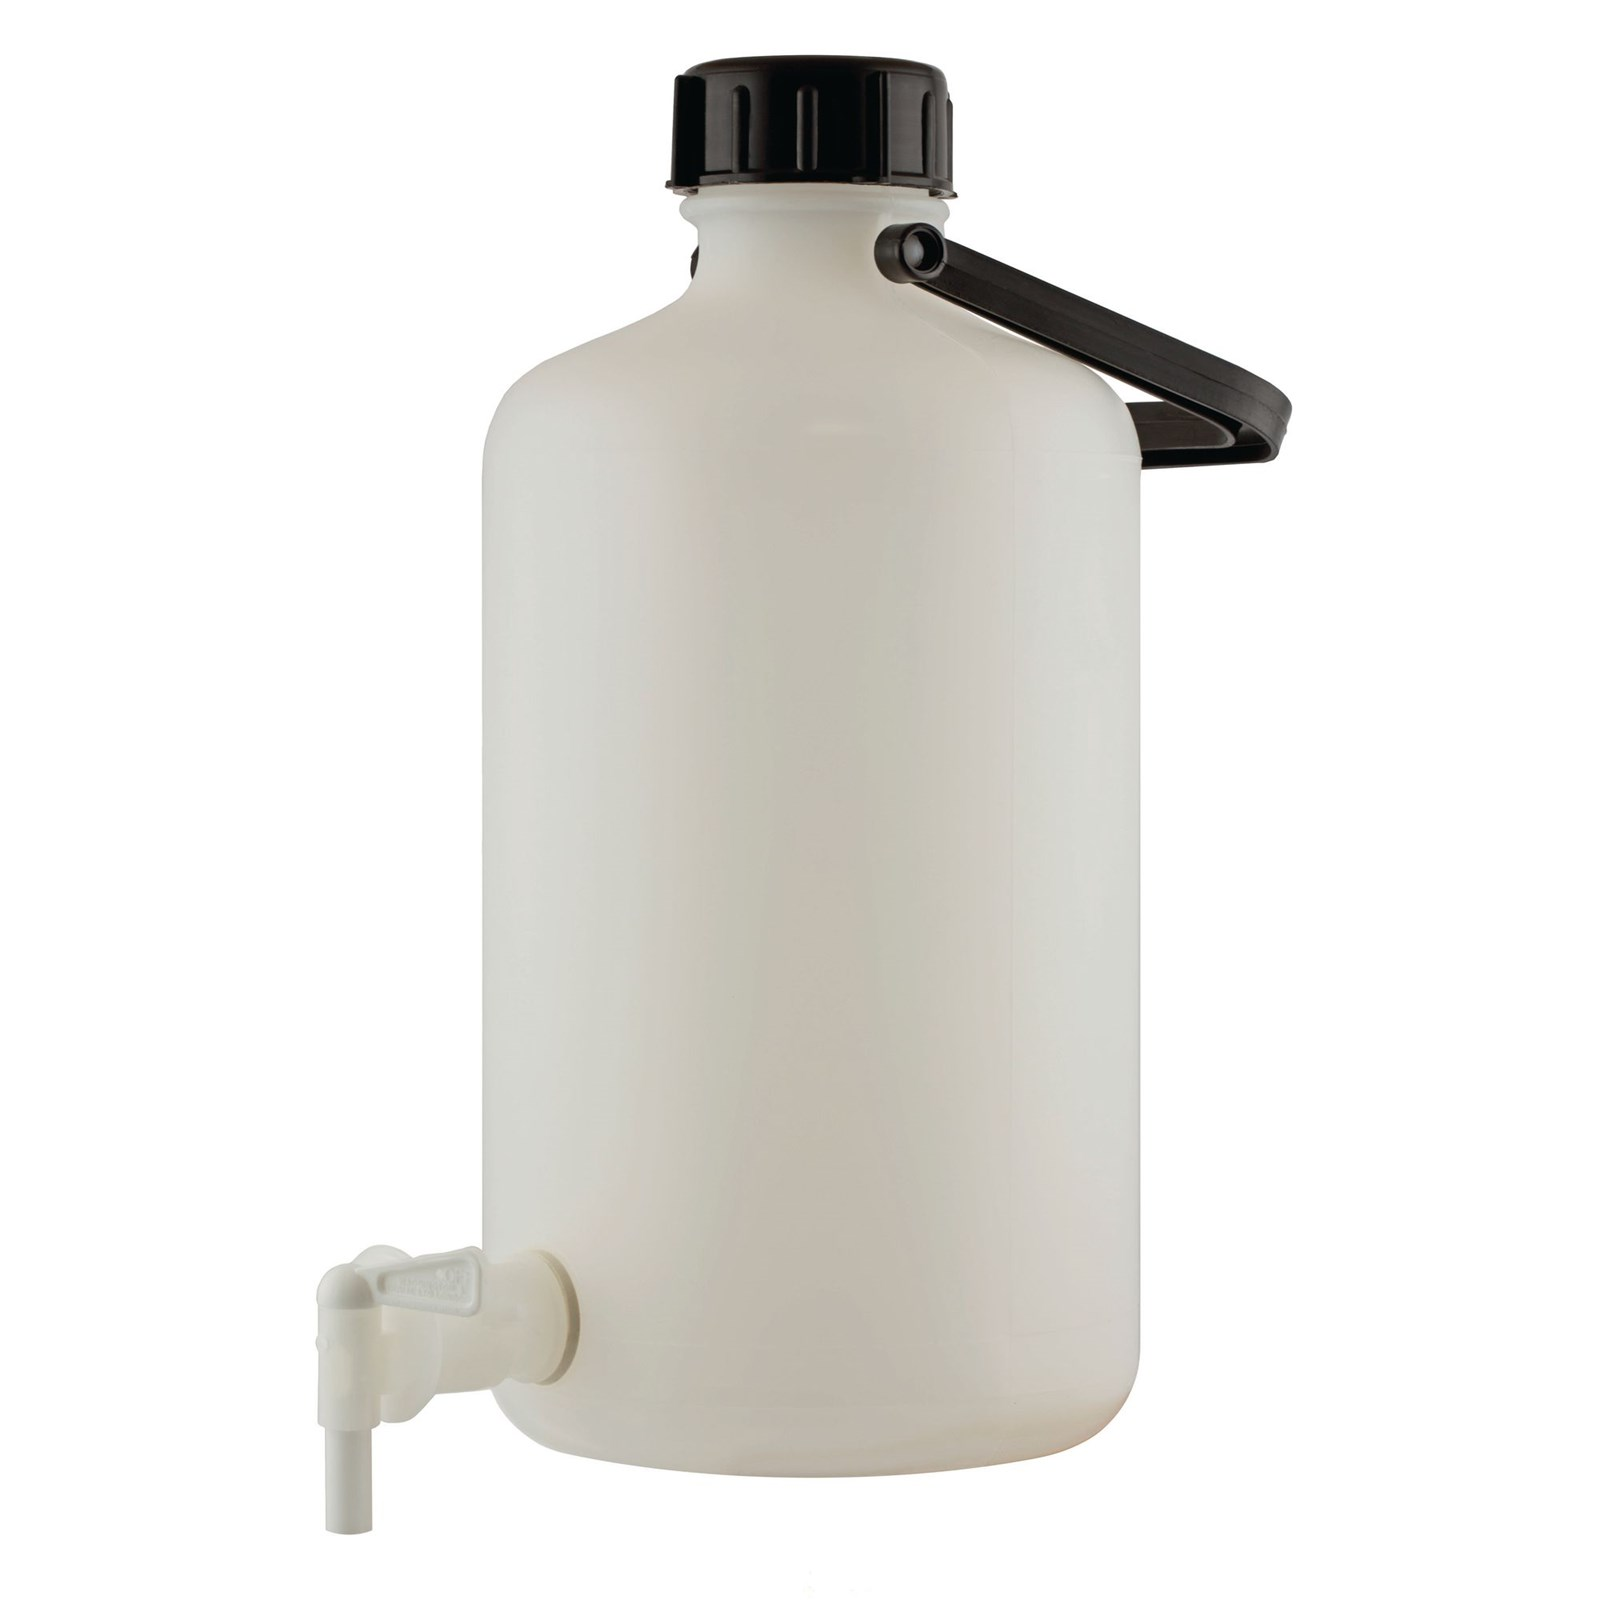 Aspirator with stopcock - 5 Litre